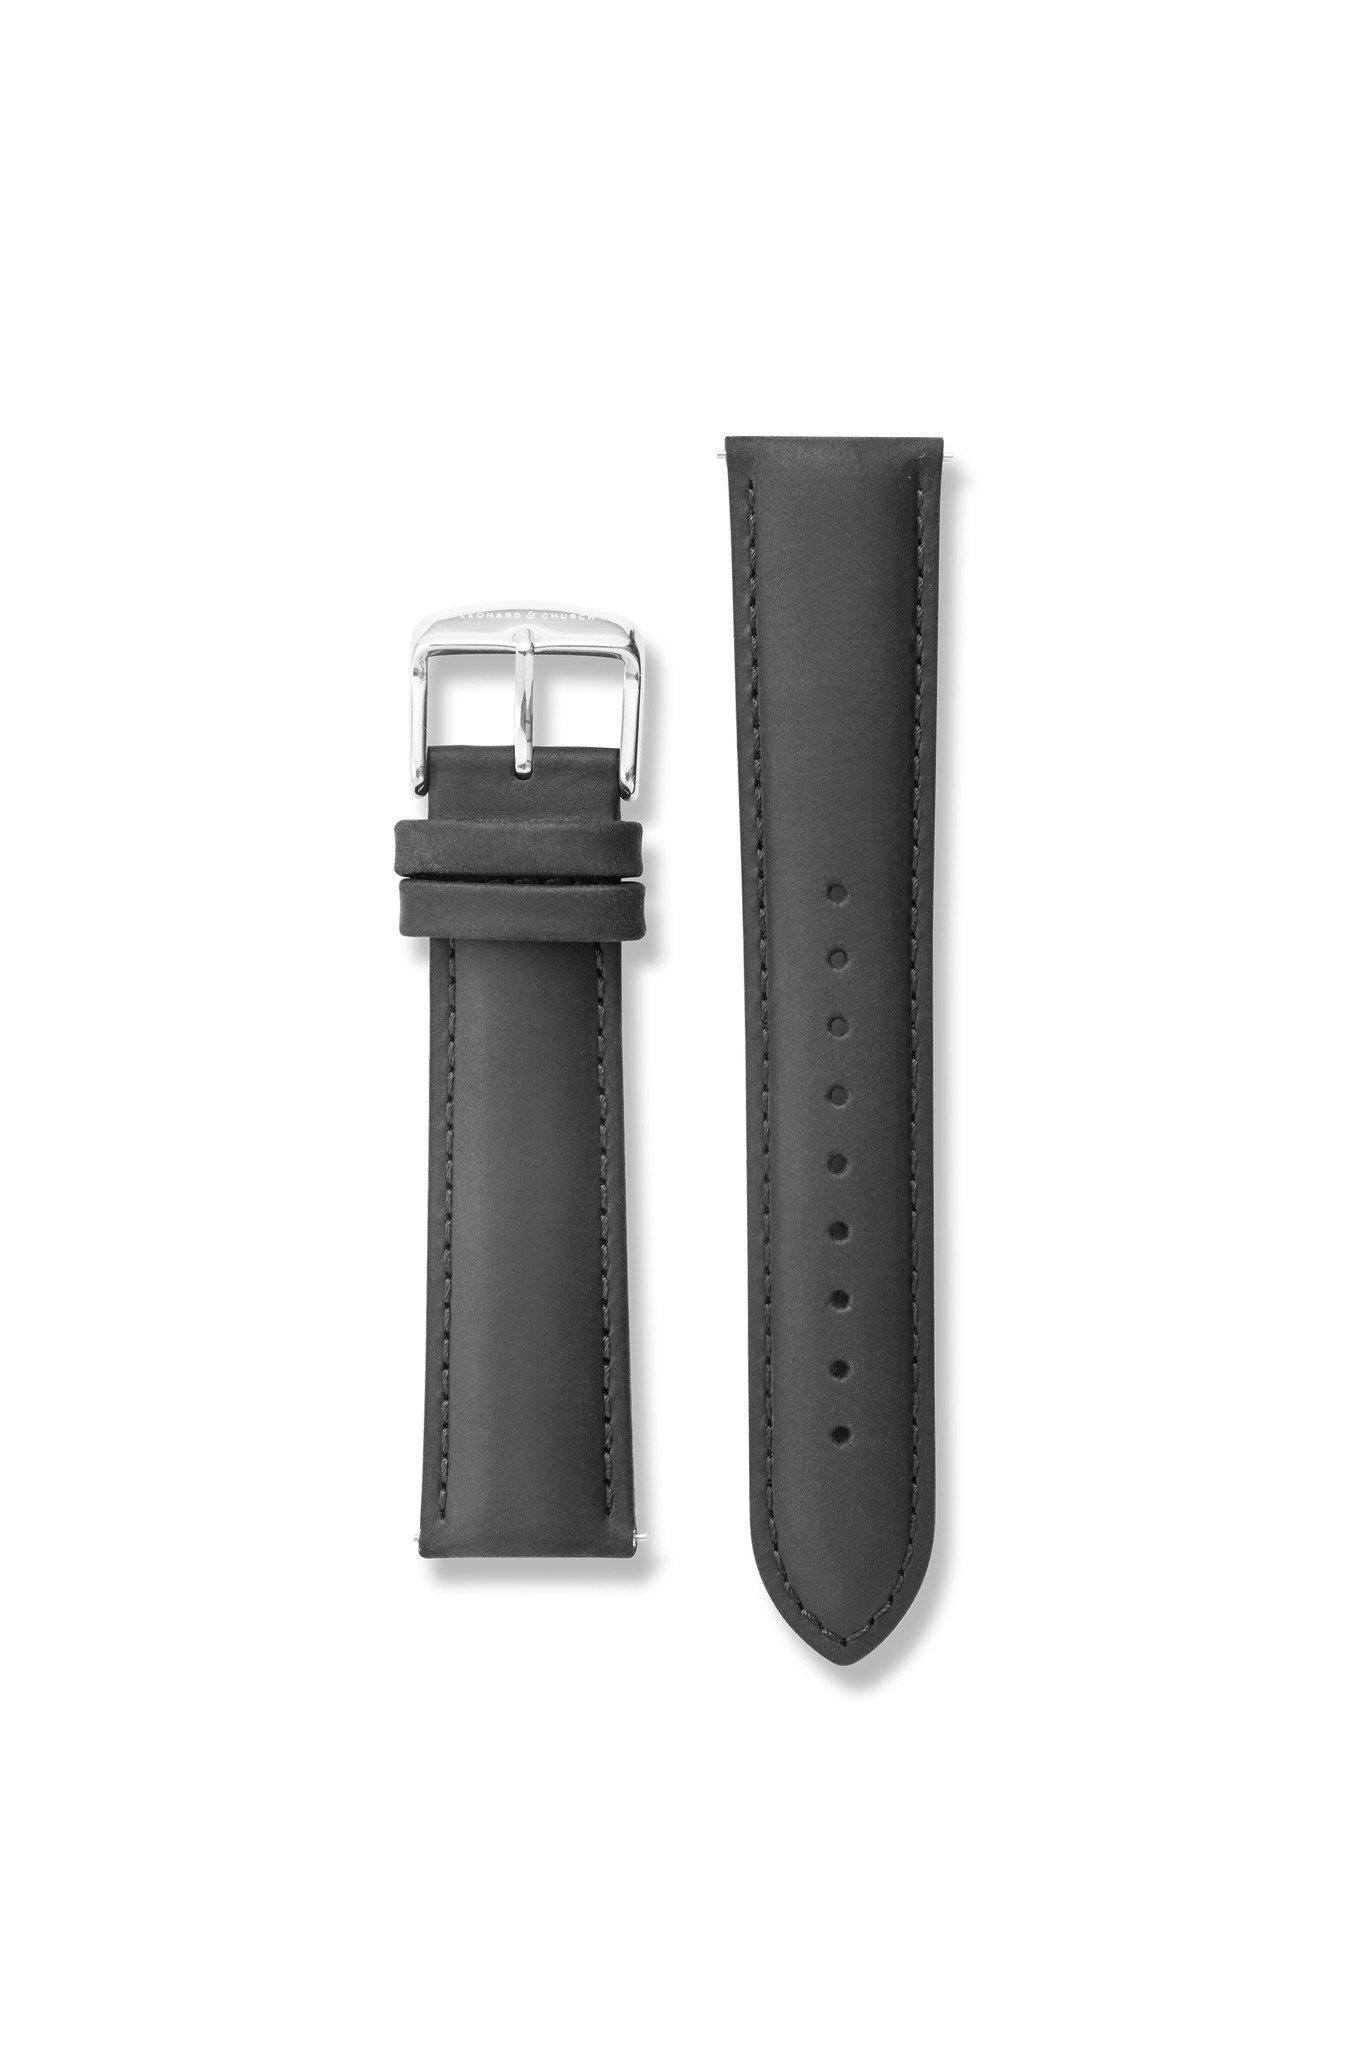 Strap - Suede Leather Black / Silver Strap